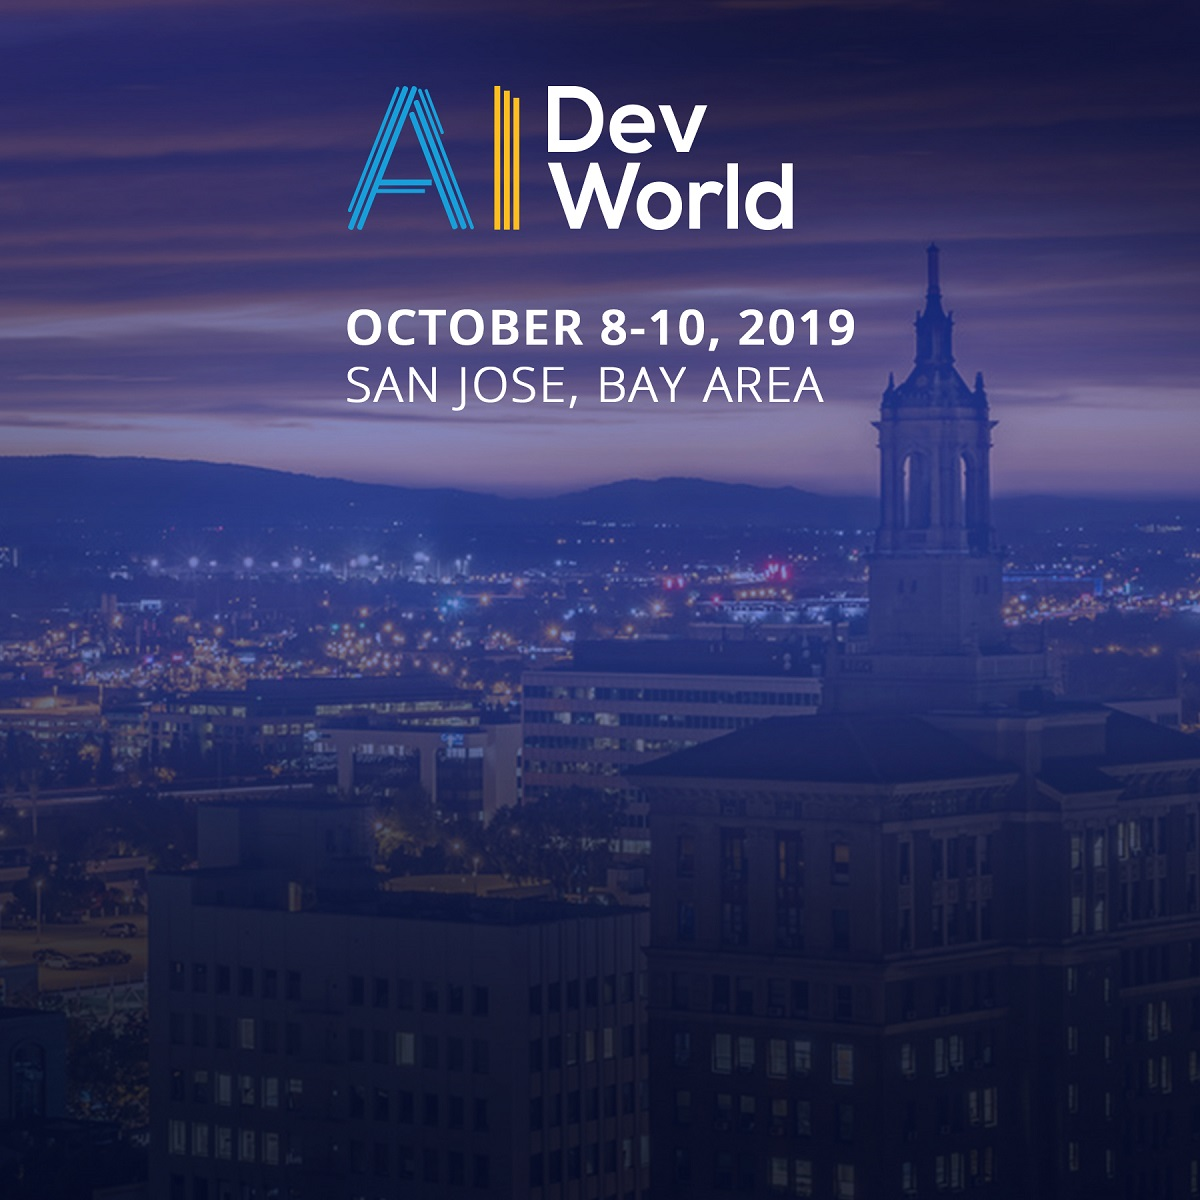 AI DevWorld 2019 at San Jose Convention Center in San